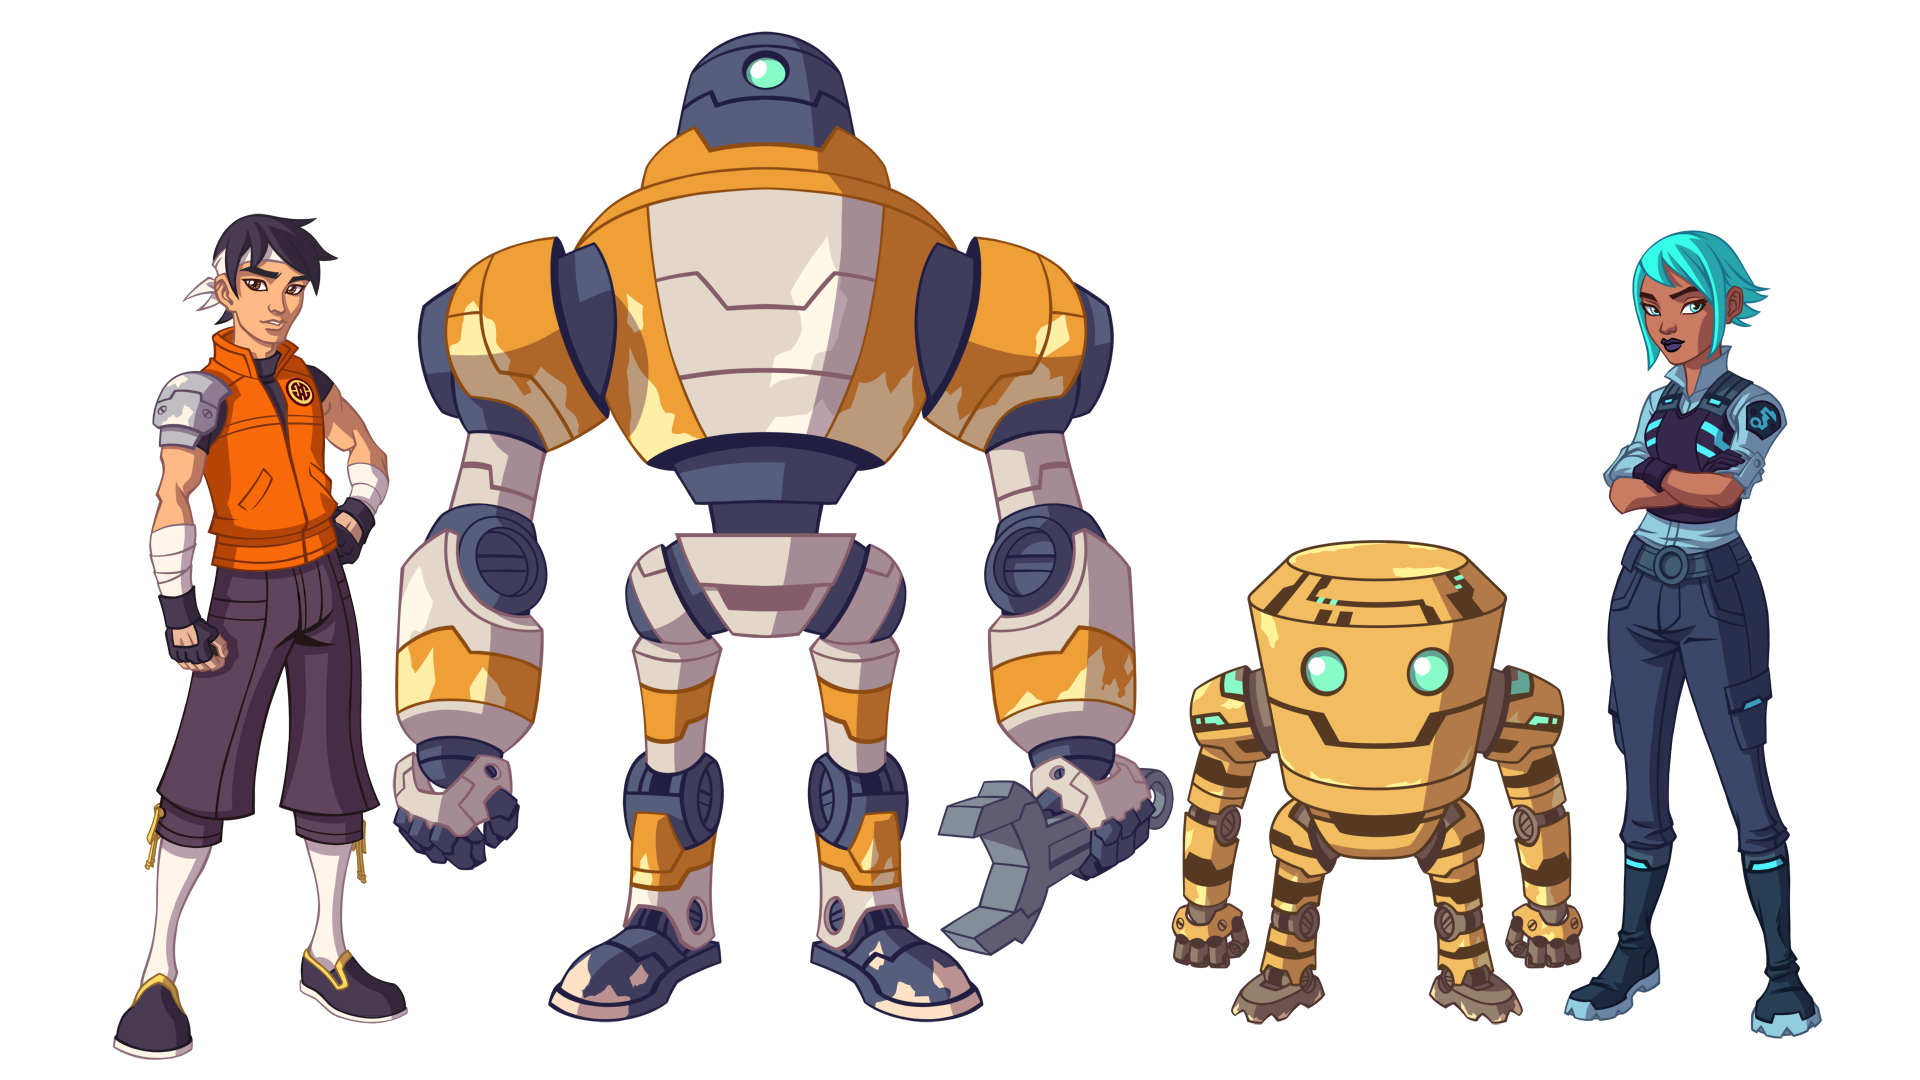 Skyward character designs by Steven Preson. These characters were later redrawn for the game by artist Dmitriy Logunkov.